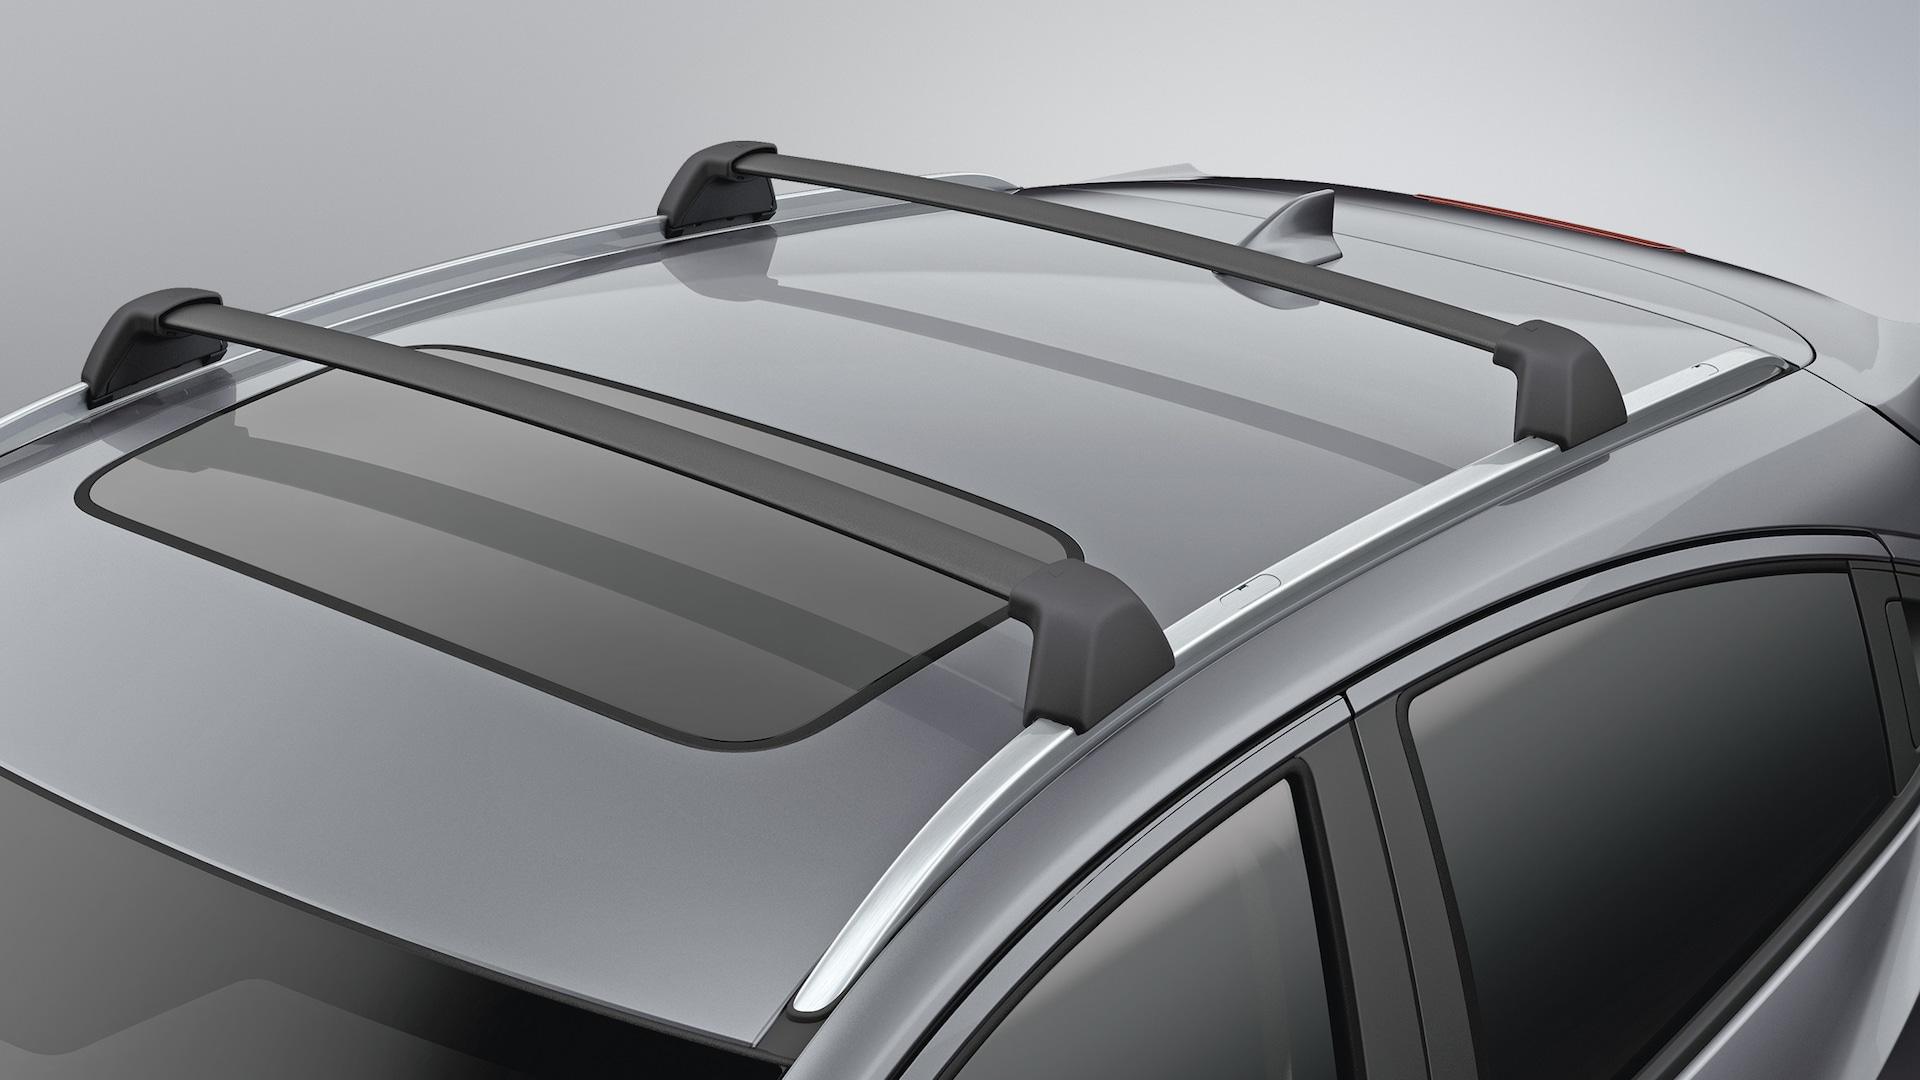 Detail view of crossbar on roof of the 2021 Honda HR-V.